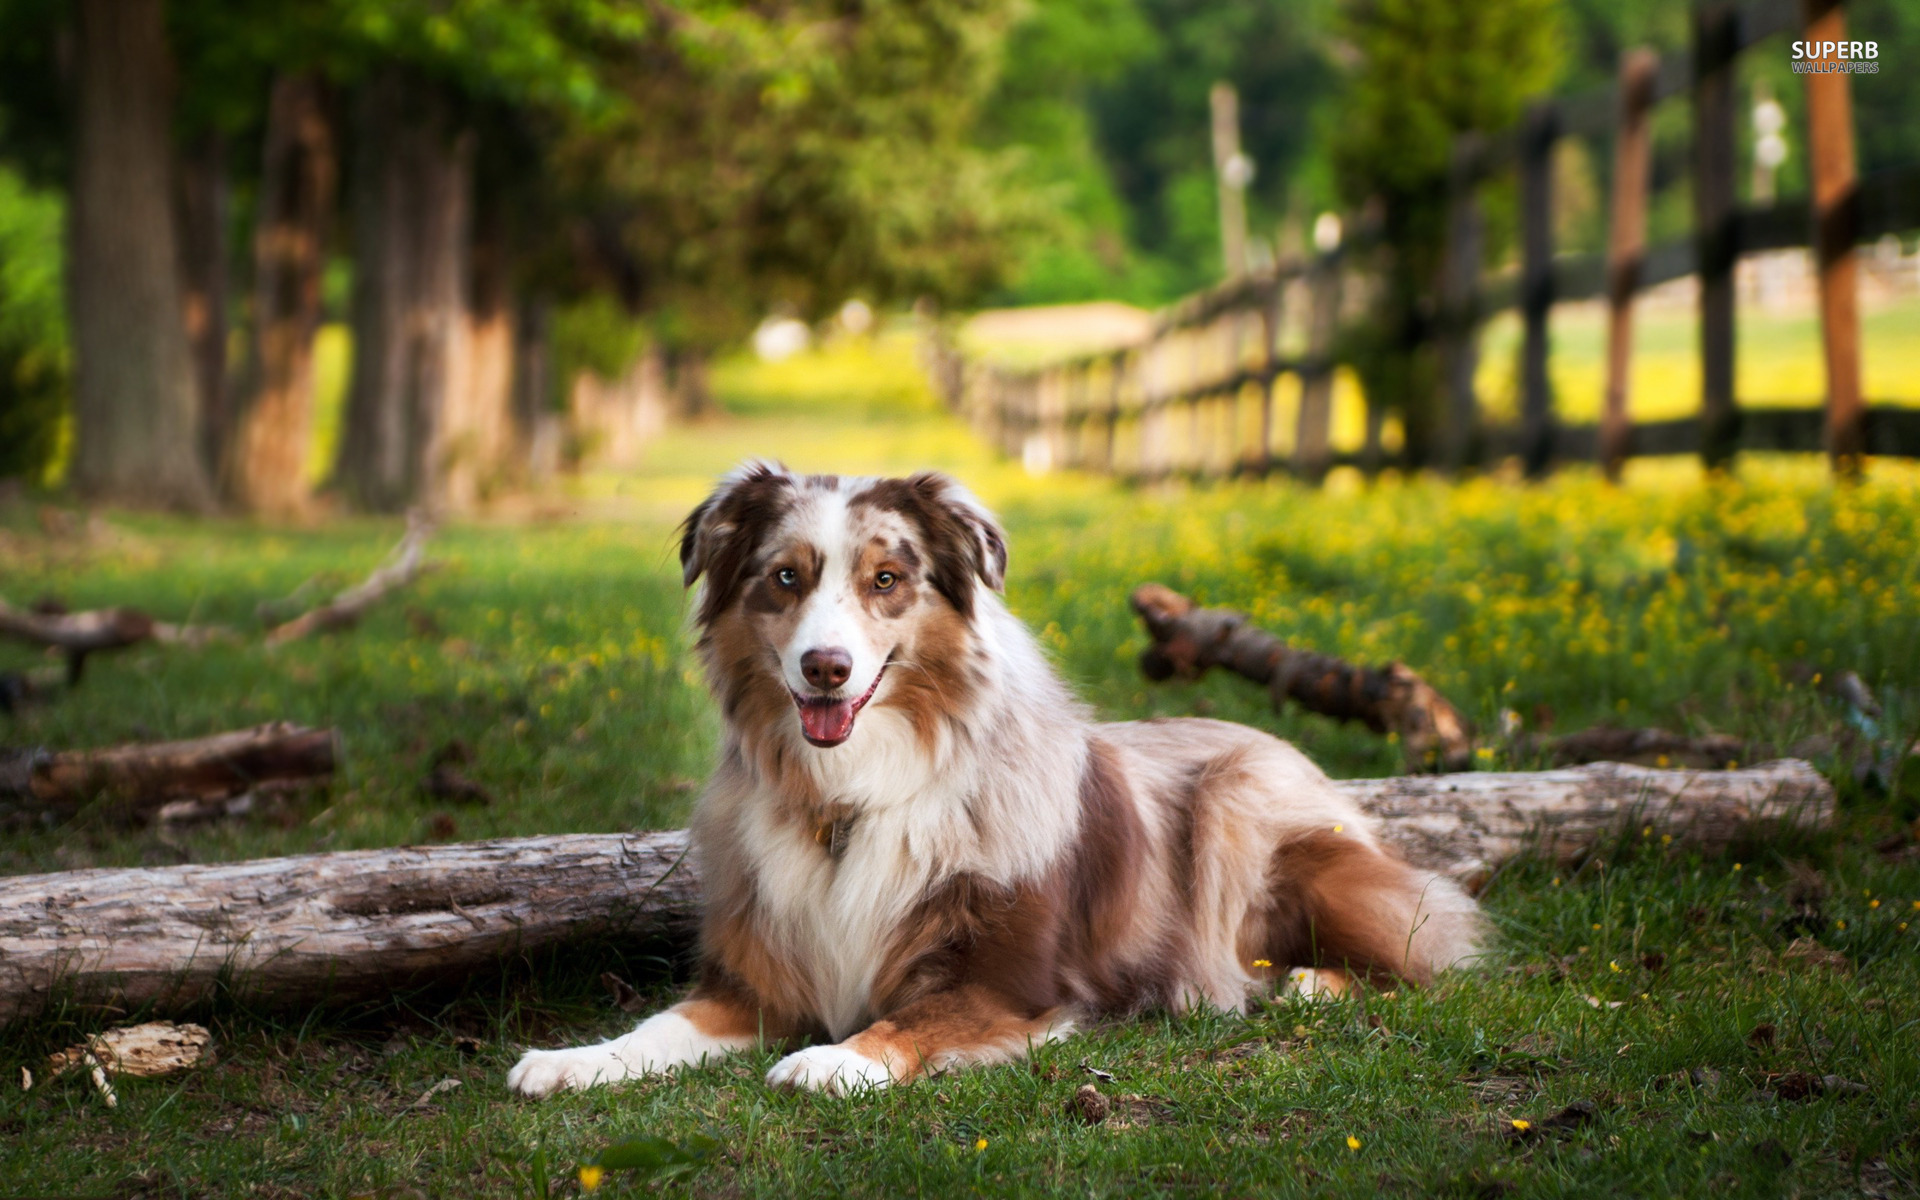 Australian Shepherd full hd